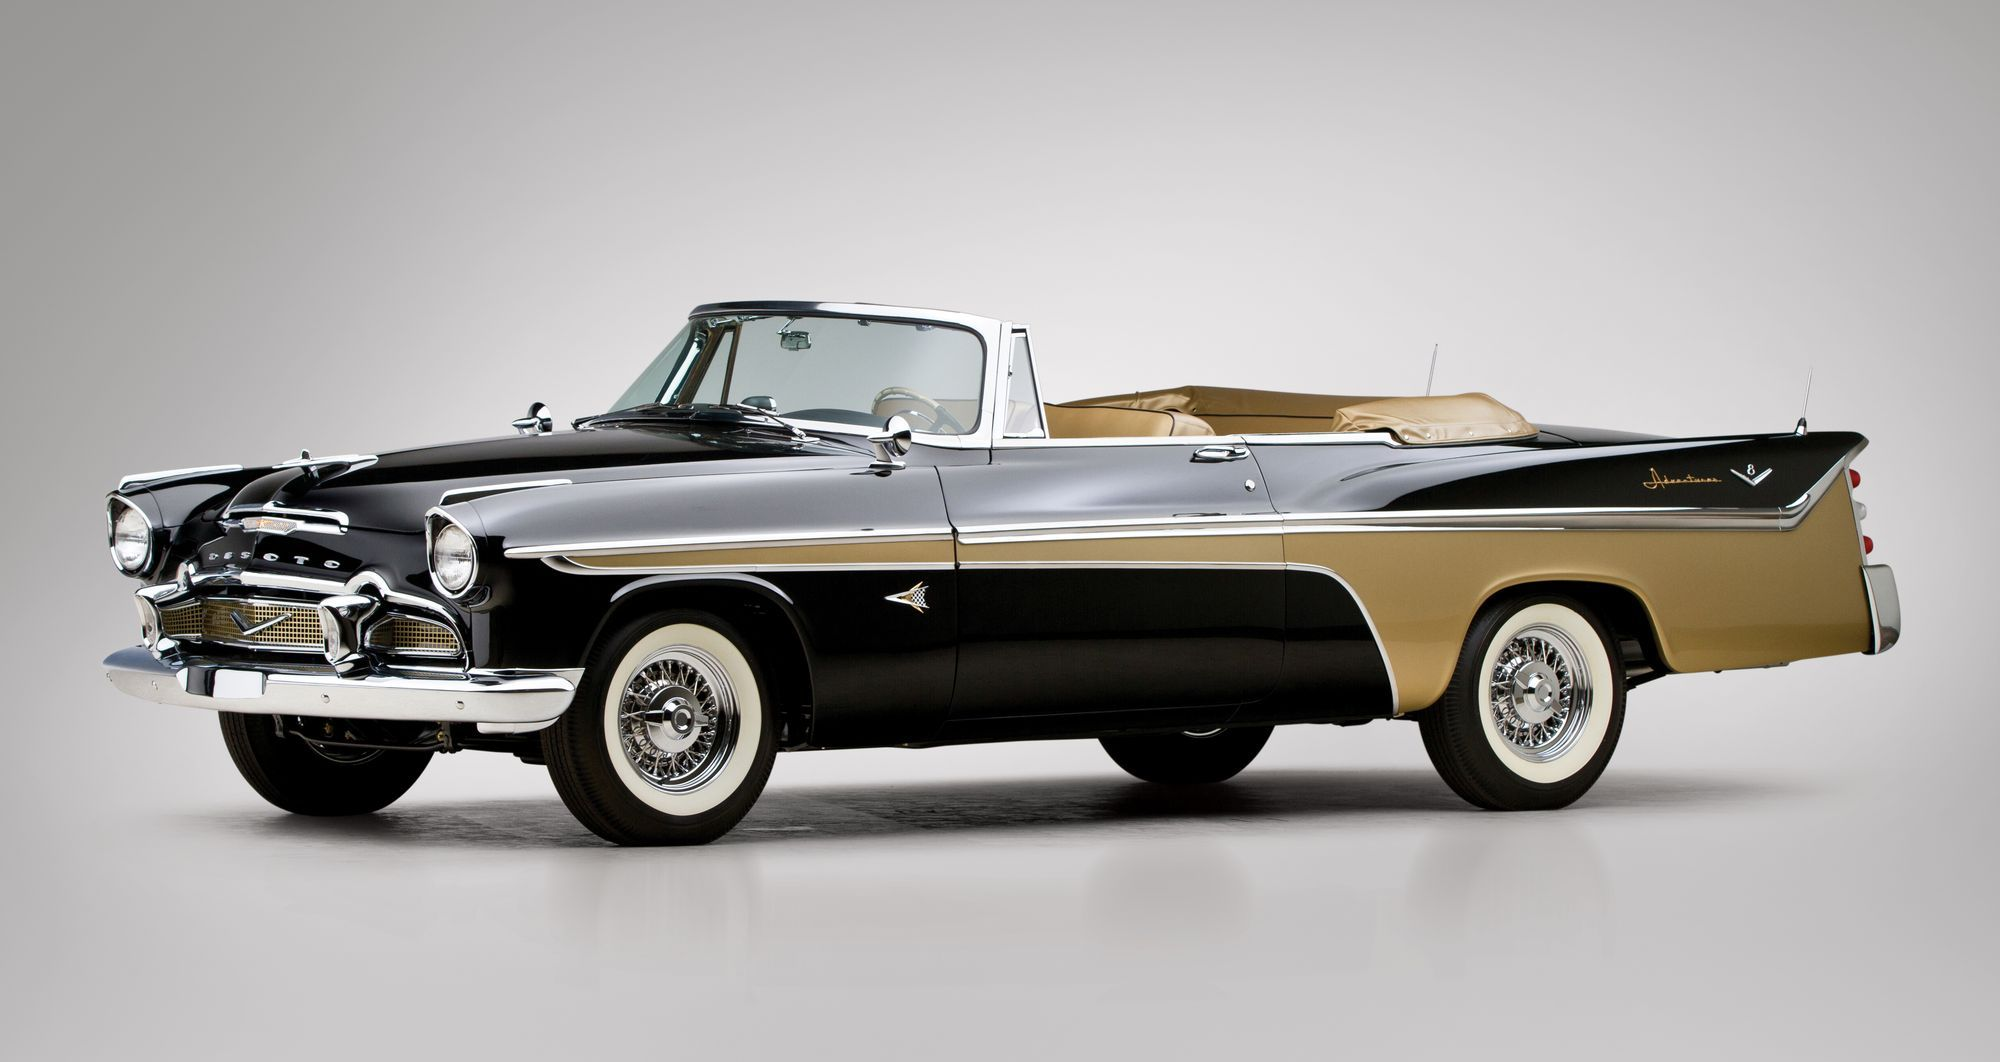 One-of-none 1956 De Soto Adventurer convertible to cross the block | Hemmings Daily